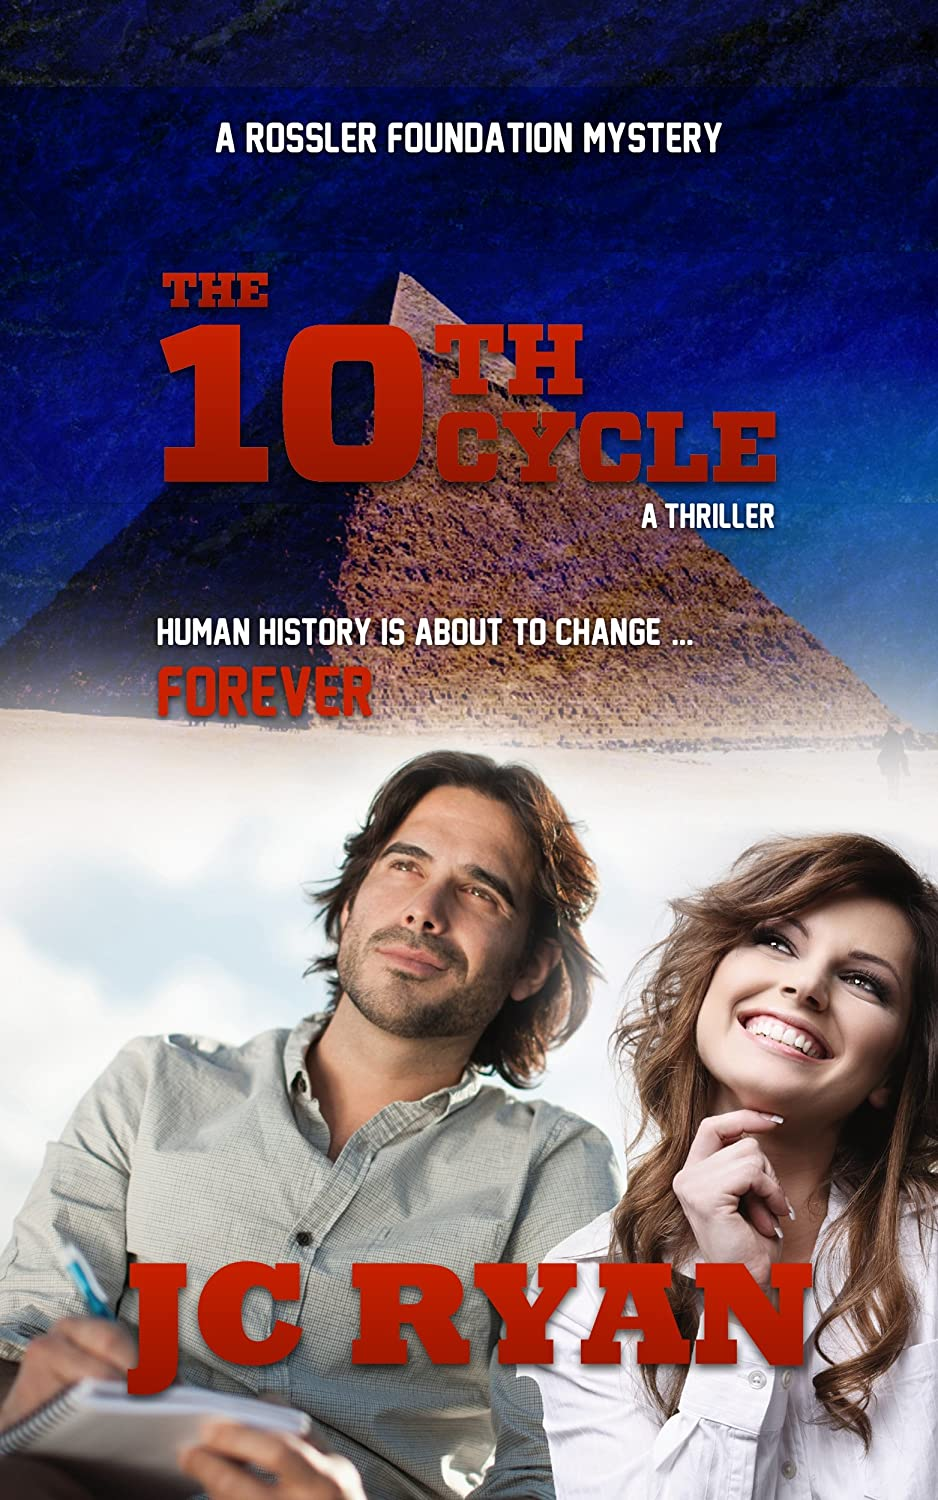 The10thCycle_Kindle_Cover